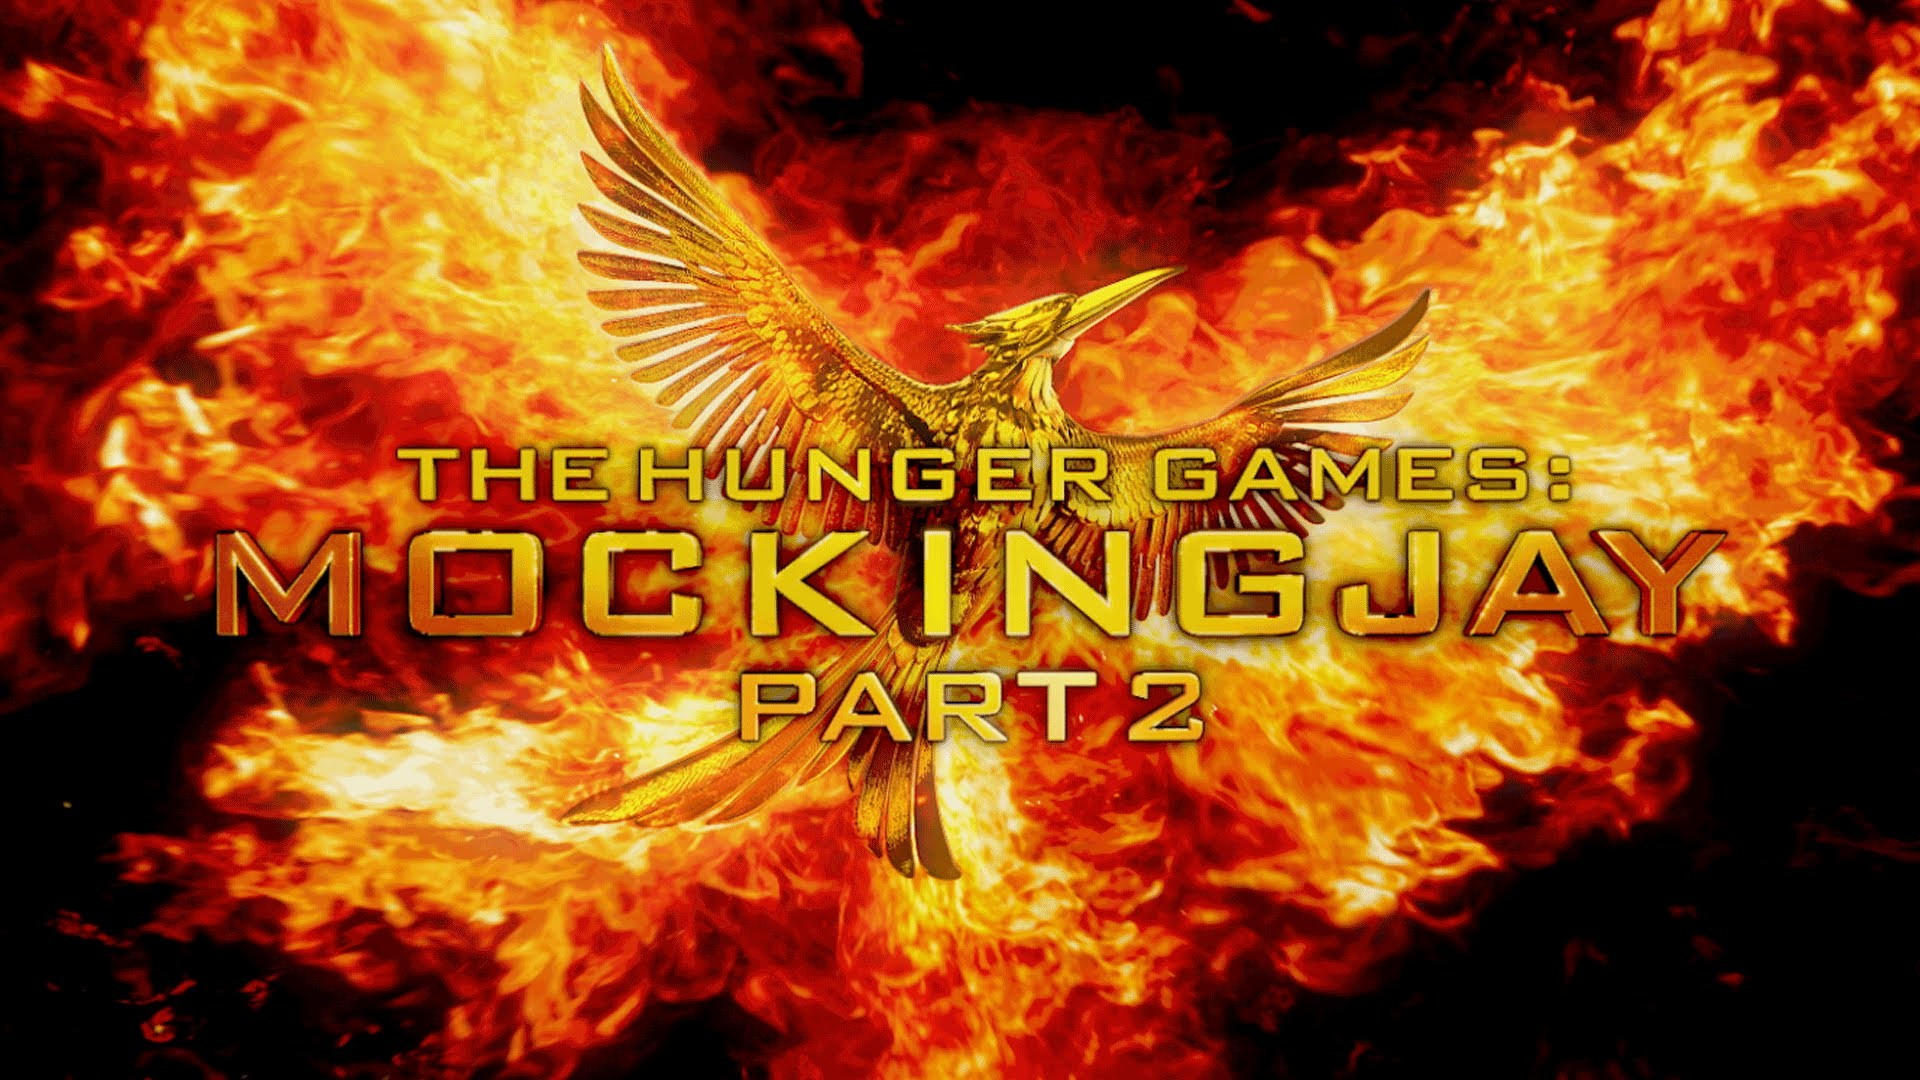 1920x1080 The Hunger Games images Mockingjay Gif wallpaper and background .